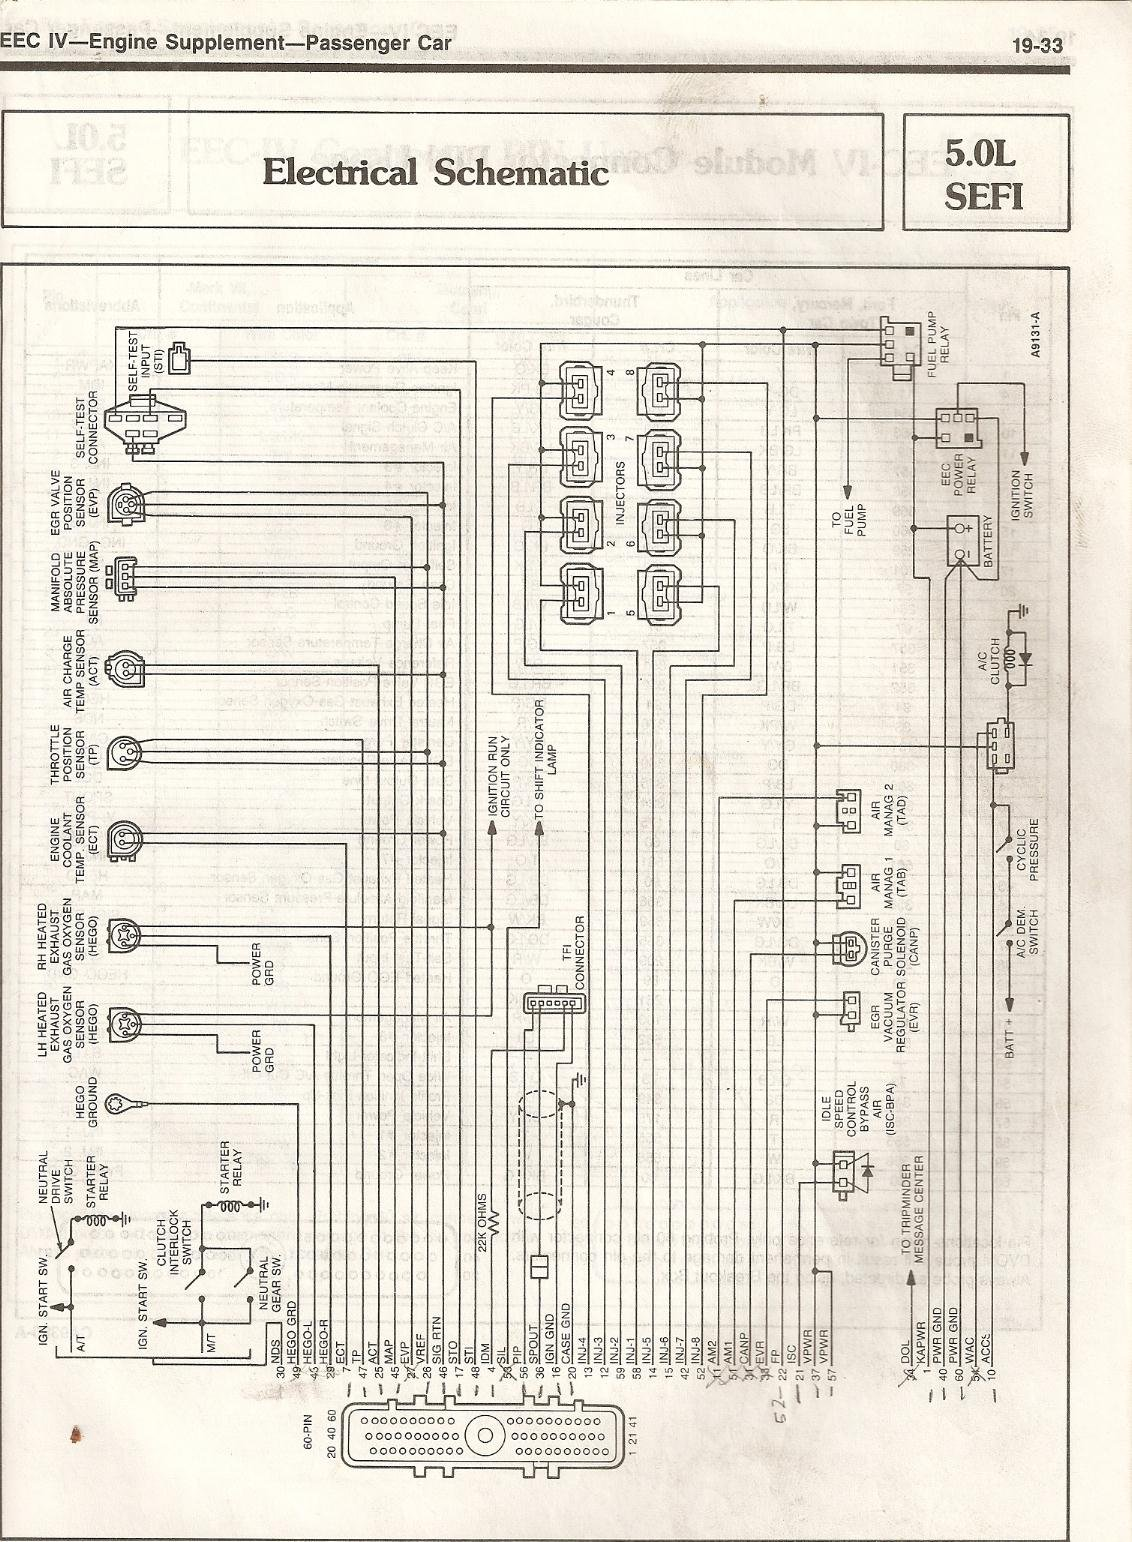 early bronco wiring diagram hpm light batten 302 to 5.0 efi swap computer pins - ford mustang forum